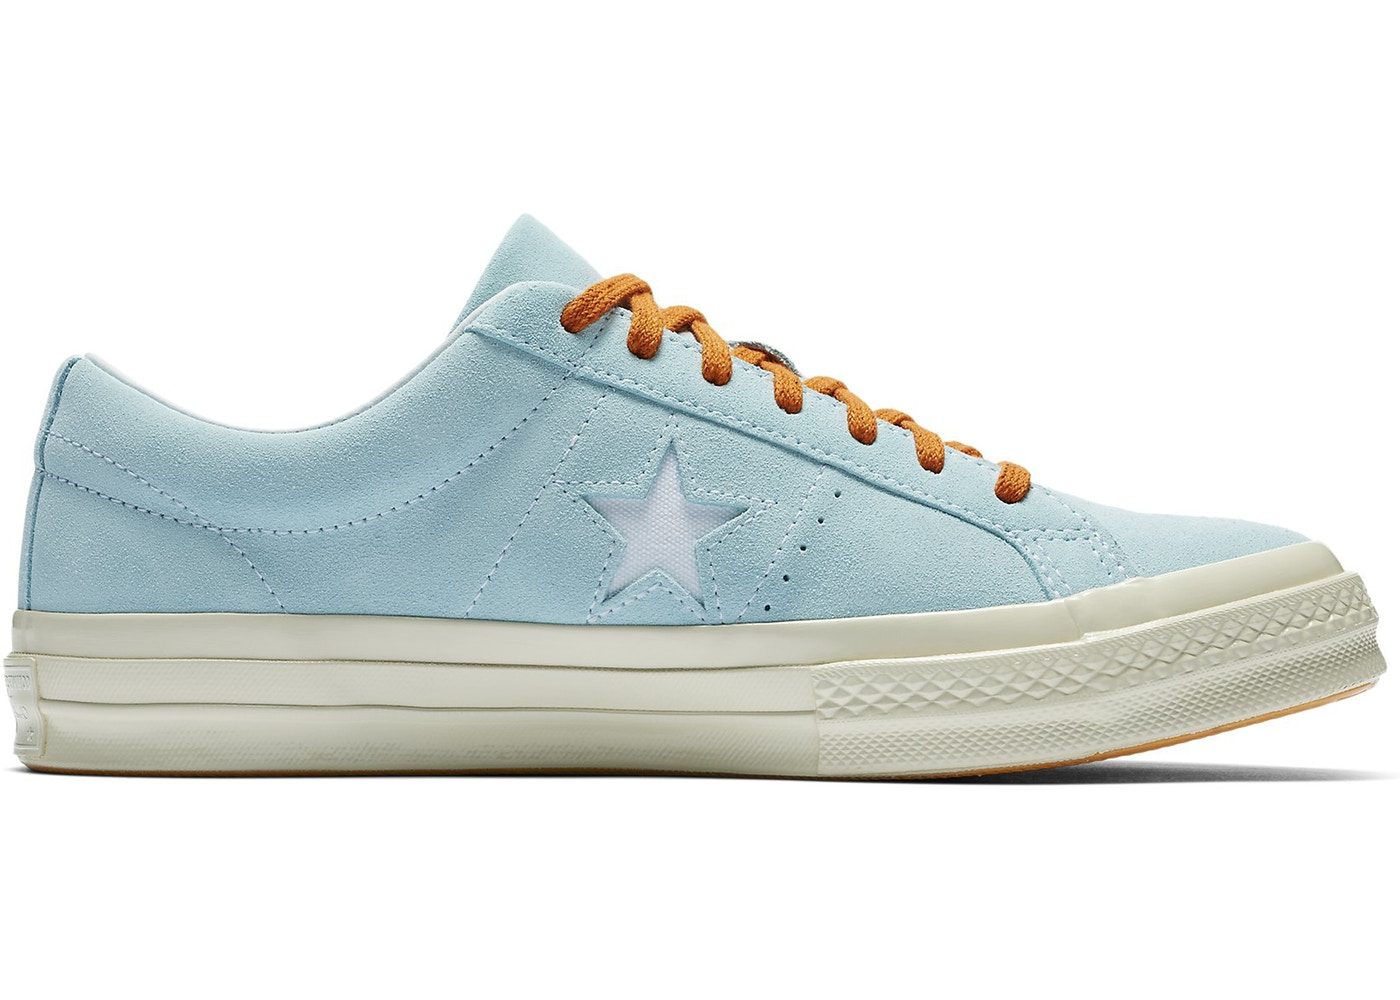 Converse One Star Ox Tyler the Creator Golf Wang Clearwater